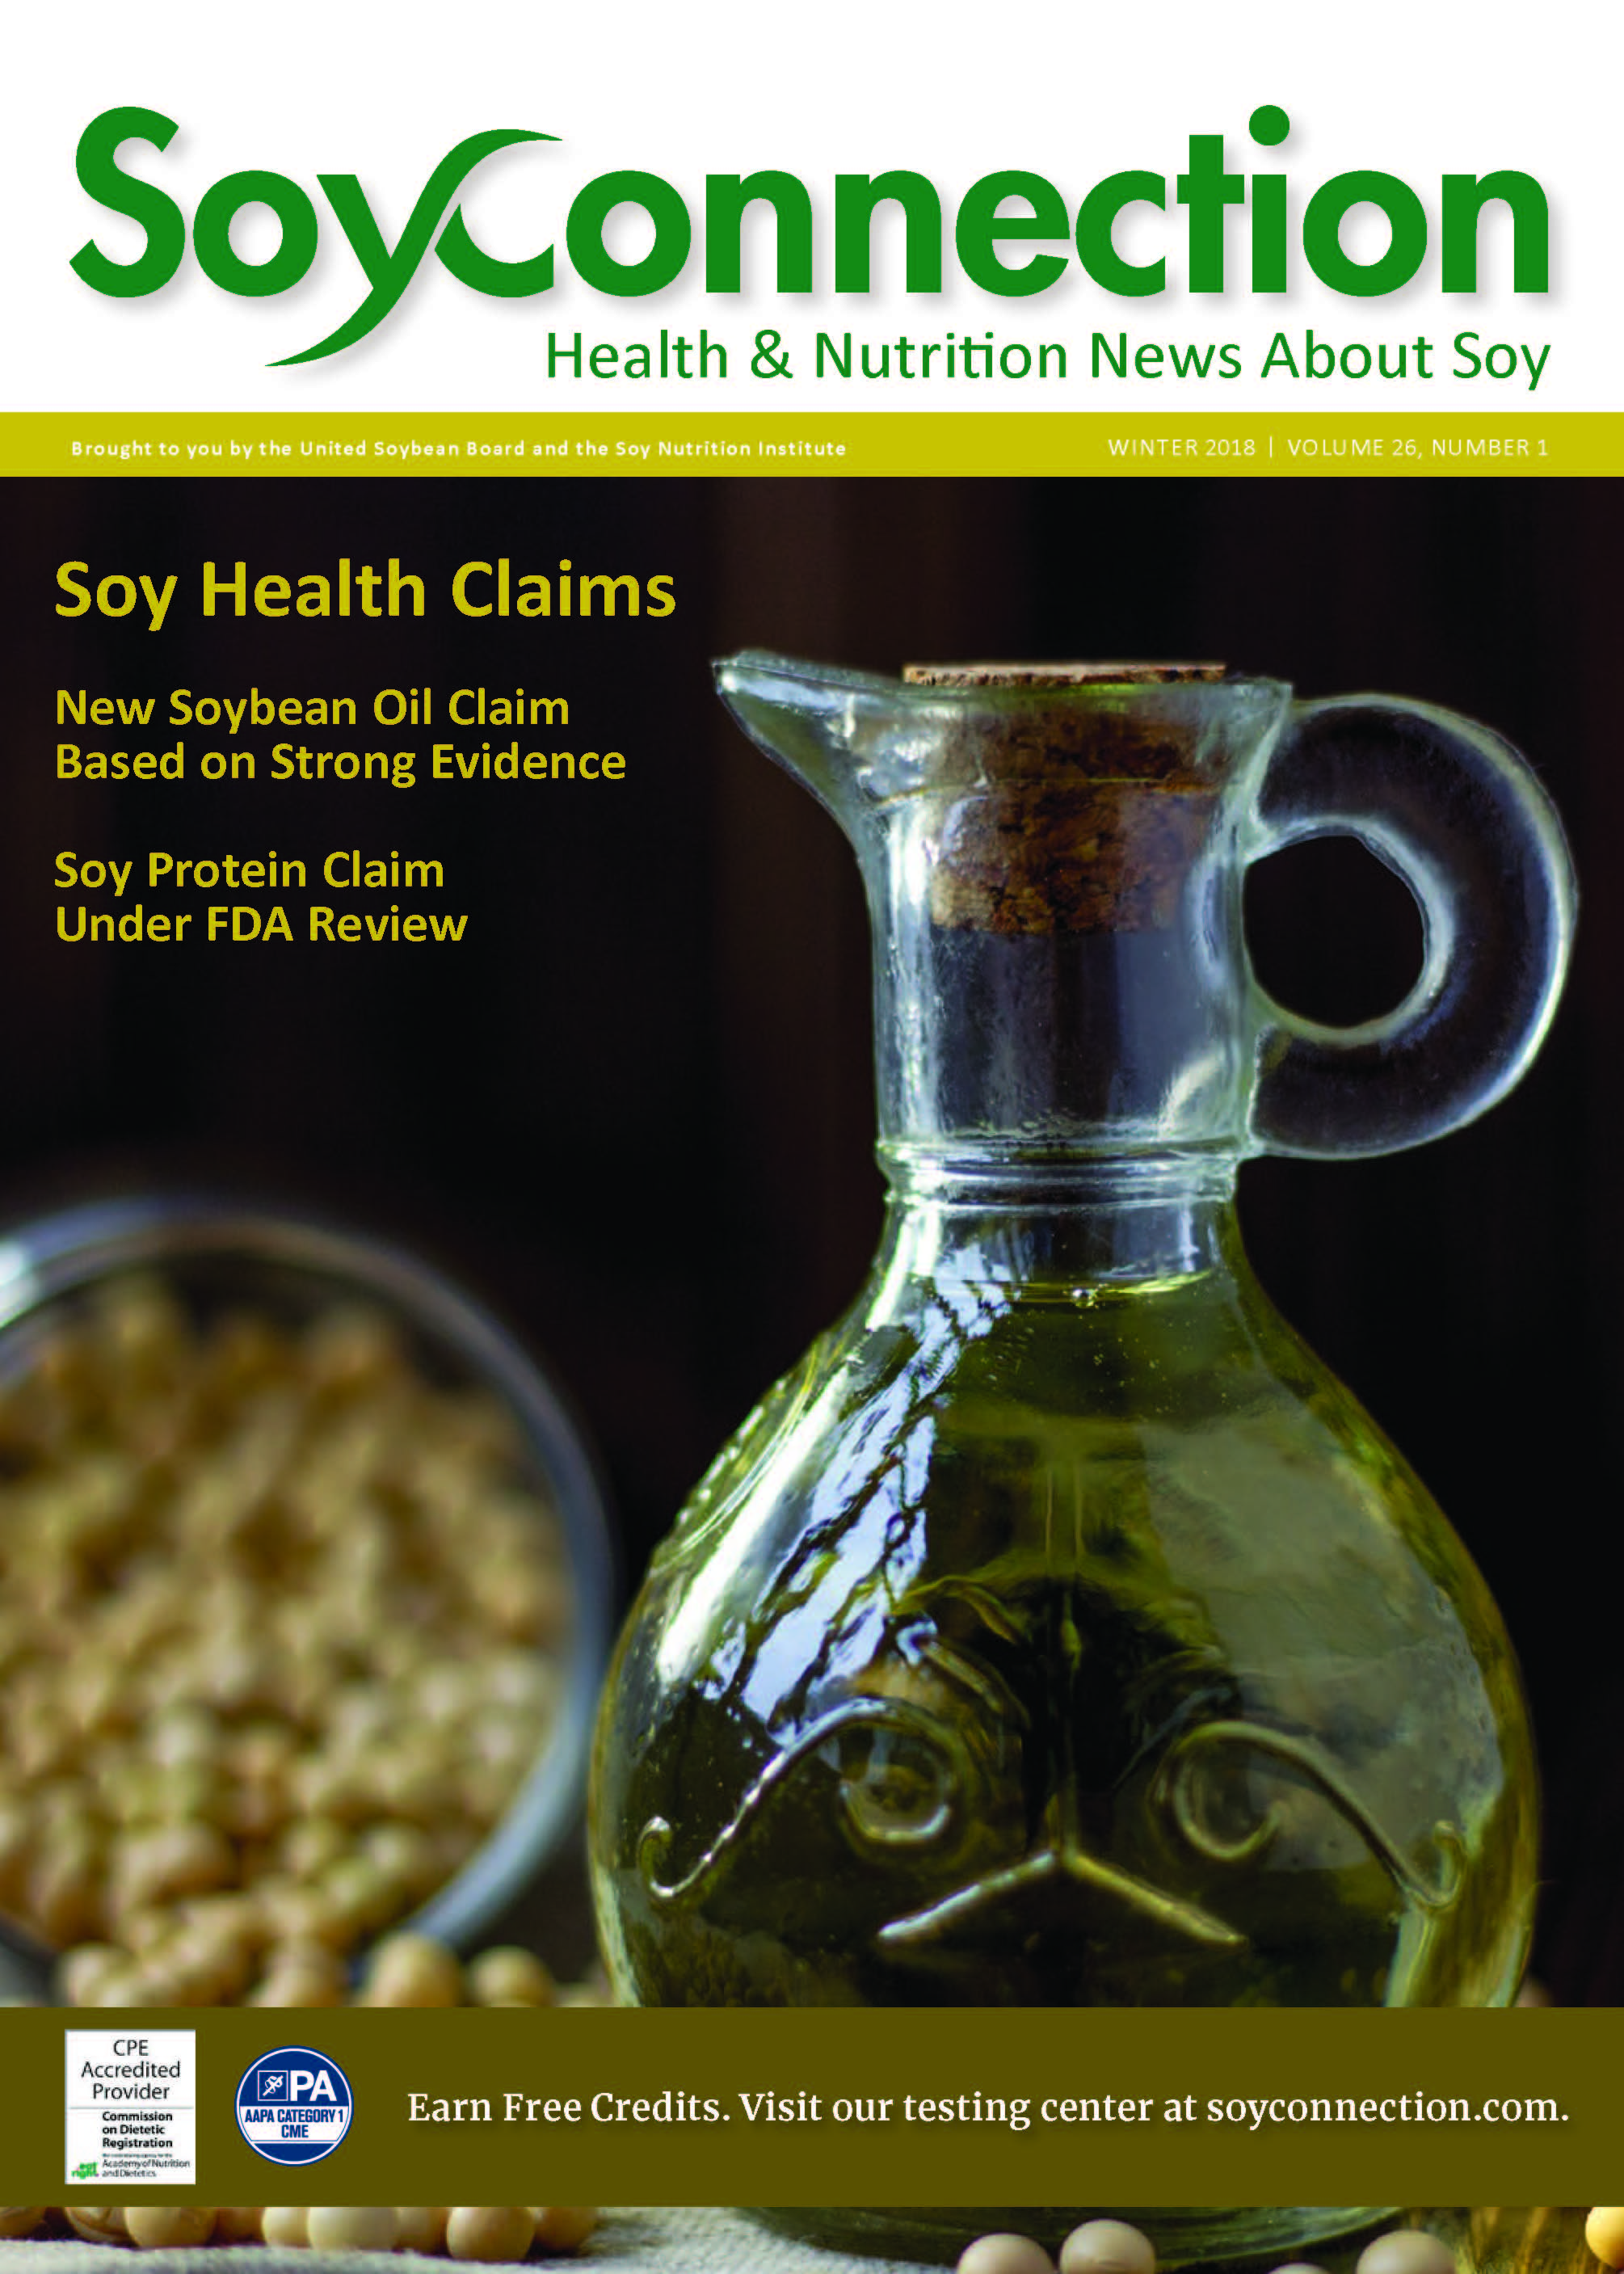 Winter 2018 Issue of Soy Connection Available Now